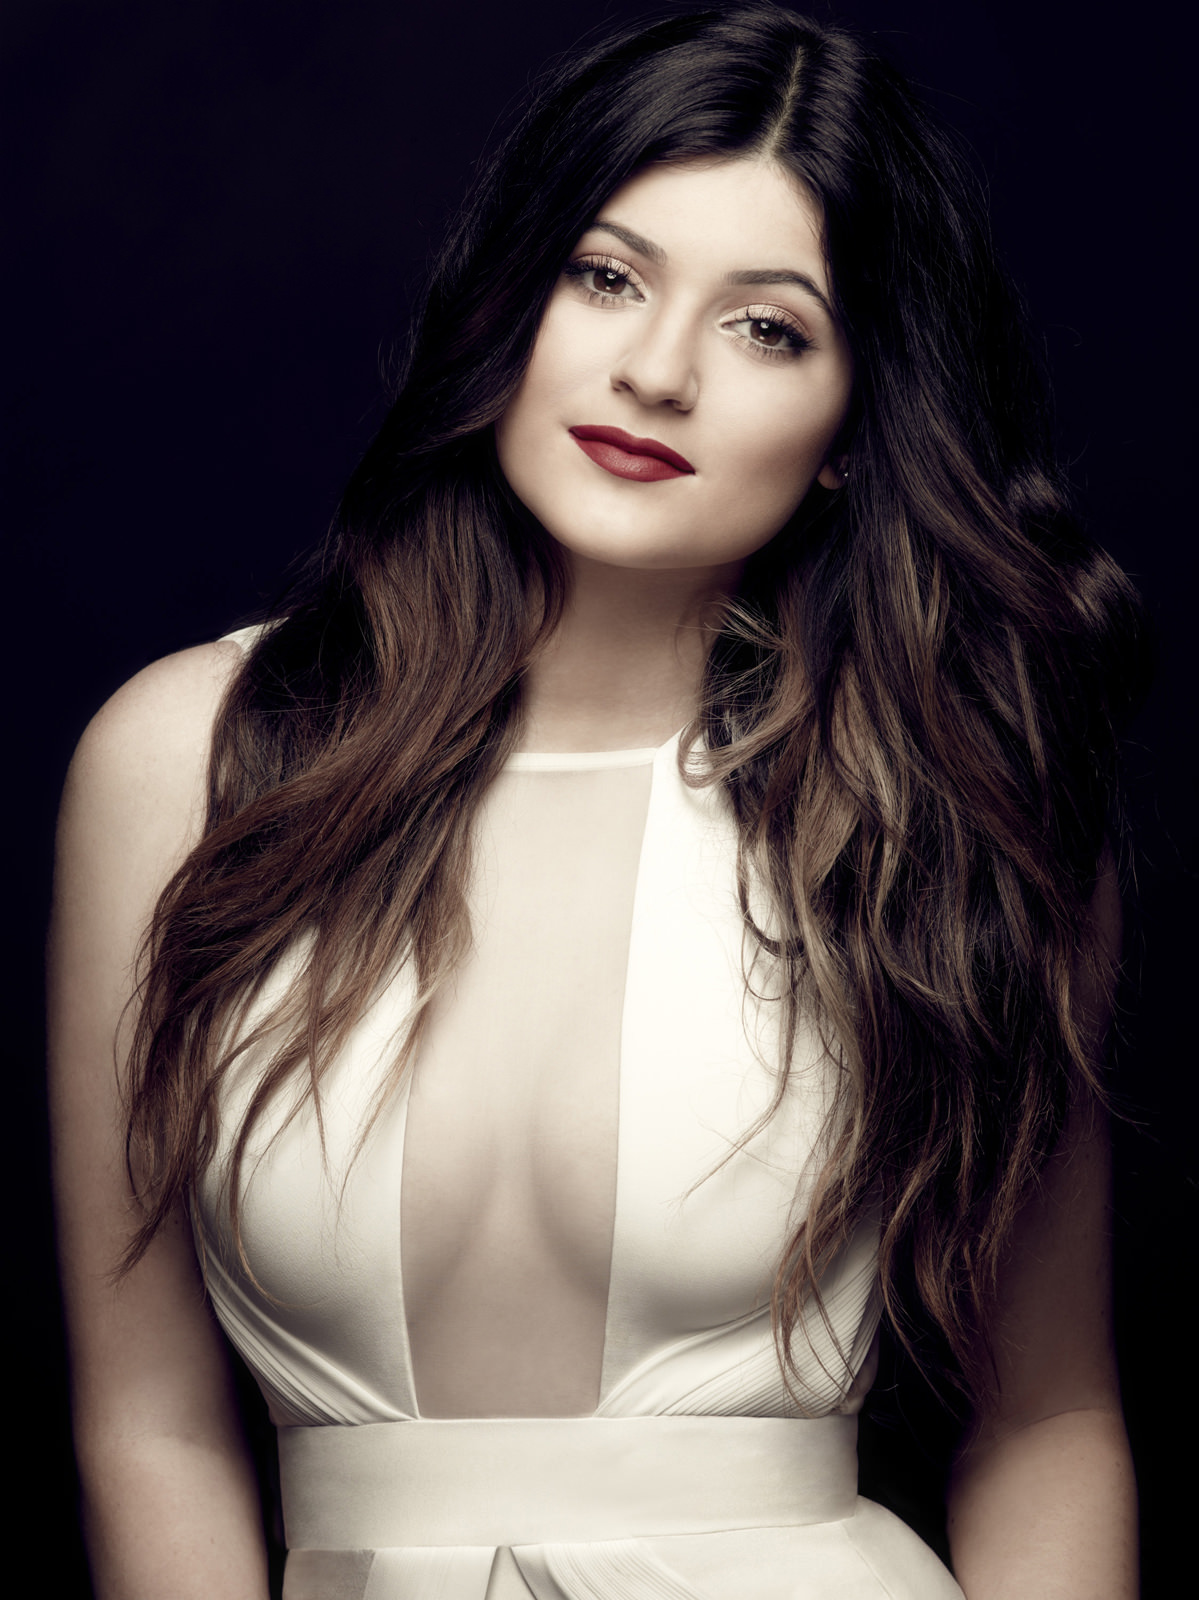 Kylie Jenner Photo Gallery